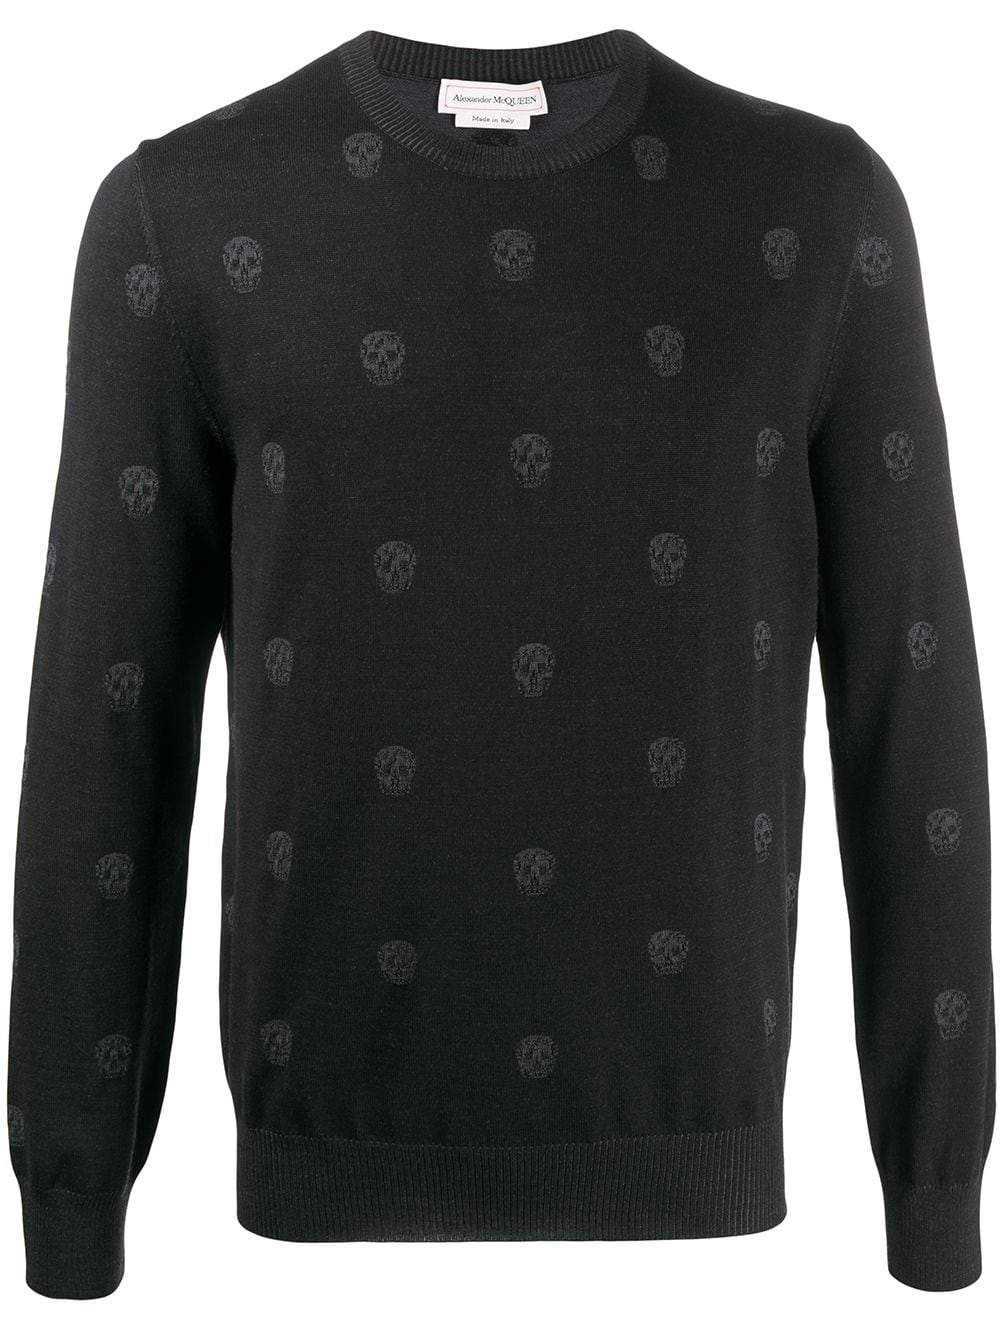 ALEXANDER MCQUEEN multiple skulls jumper black - Maison De Fashion